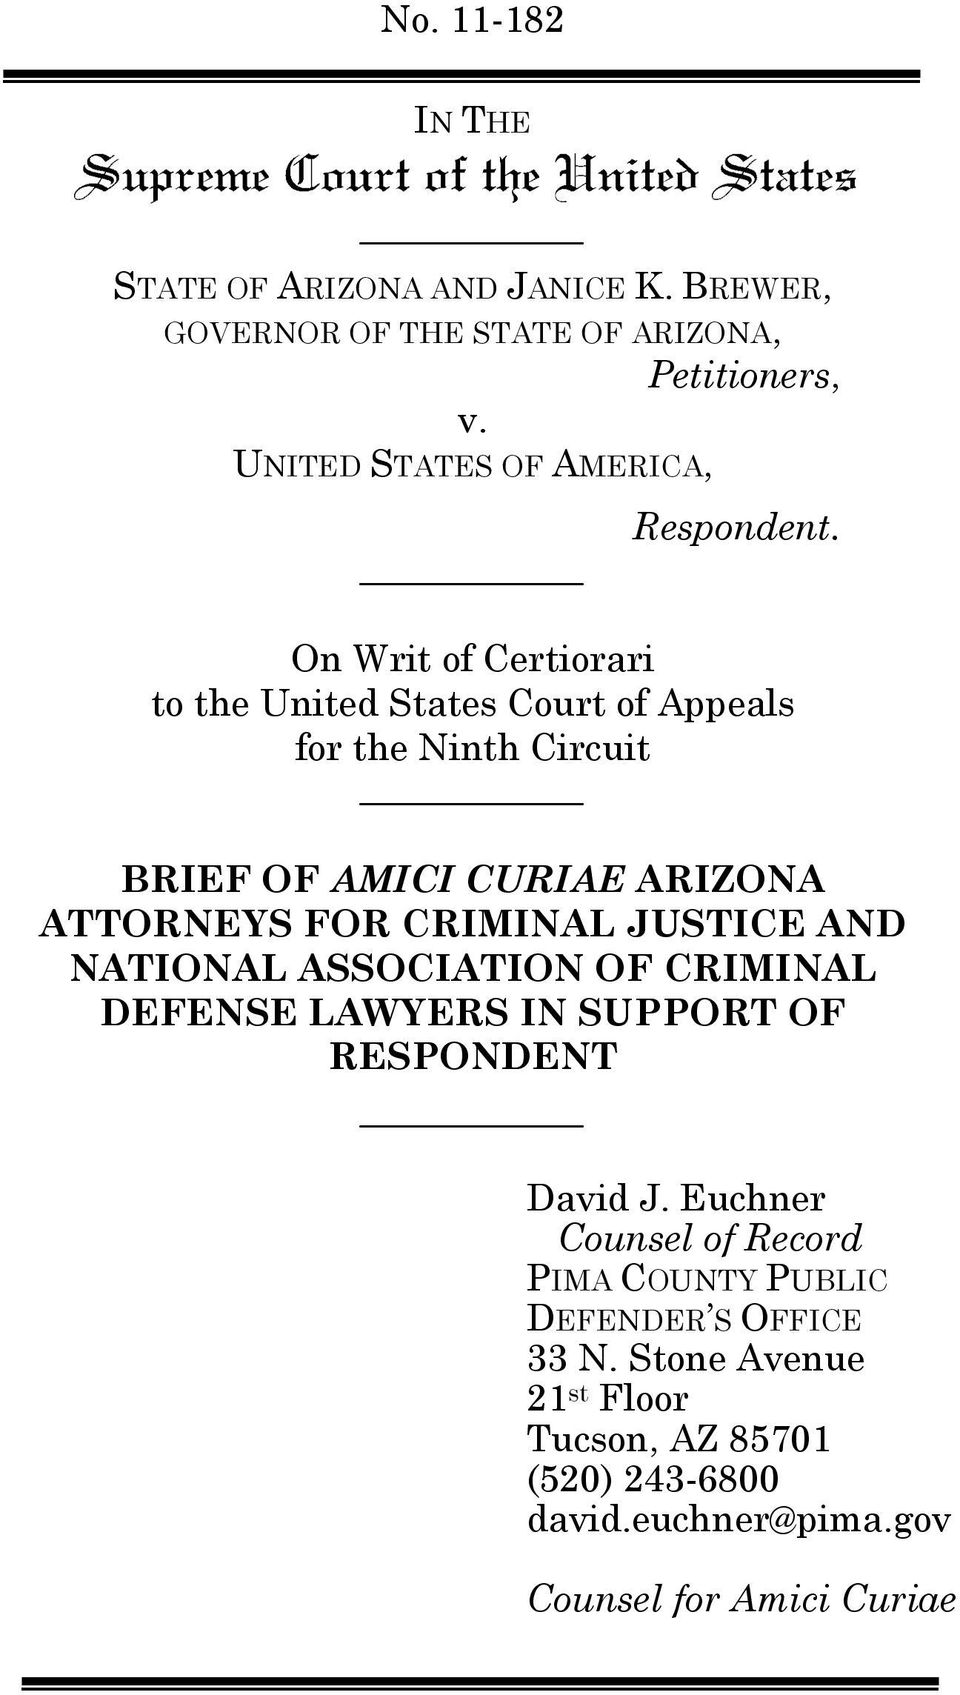 On Writ of Certiorari to the United States Court of Appeals for the Ninth Circuit BRIEF OF AMICI CURIAE ARIZONA ATTORNEYS FOR CRIMINAL